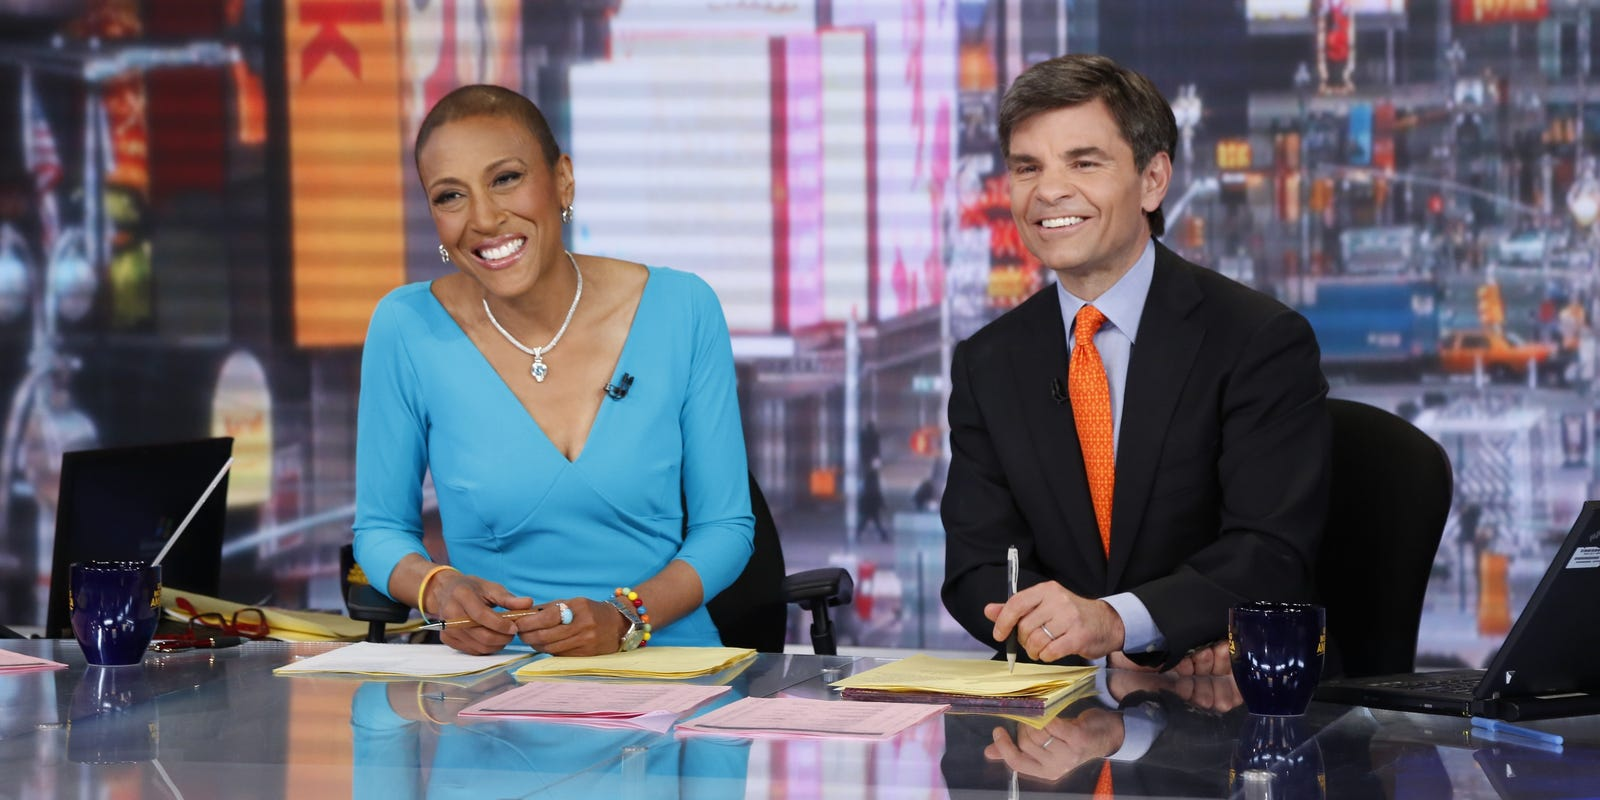 Good Morning America View Your Deal : Robin roberts returns to gma